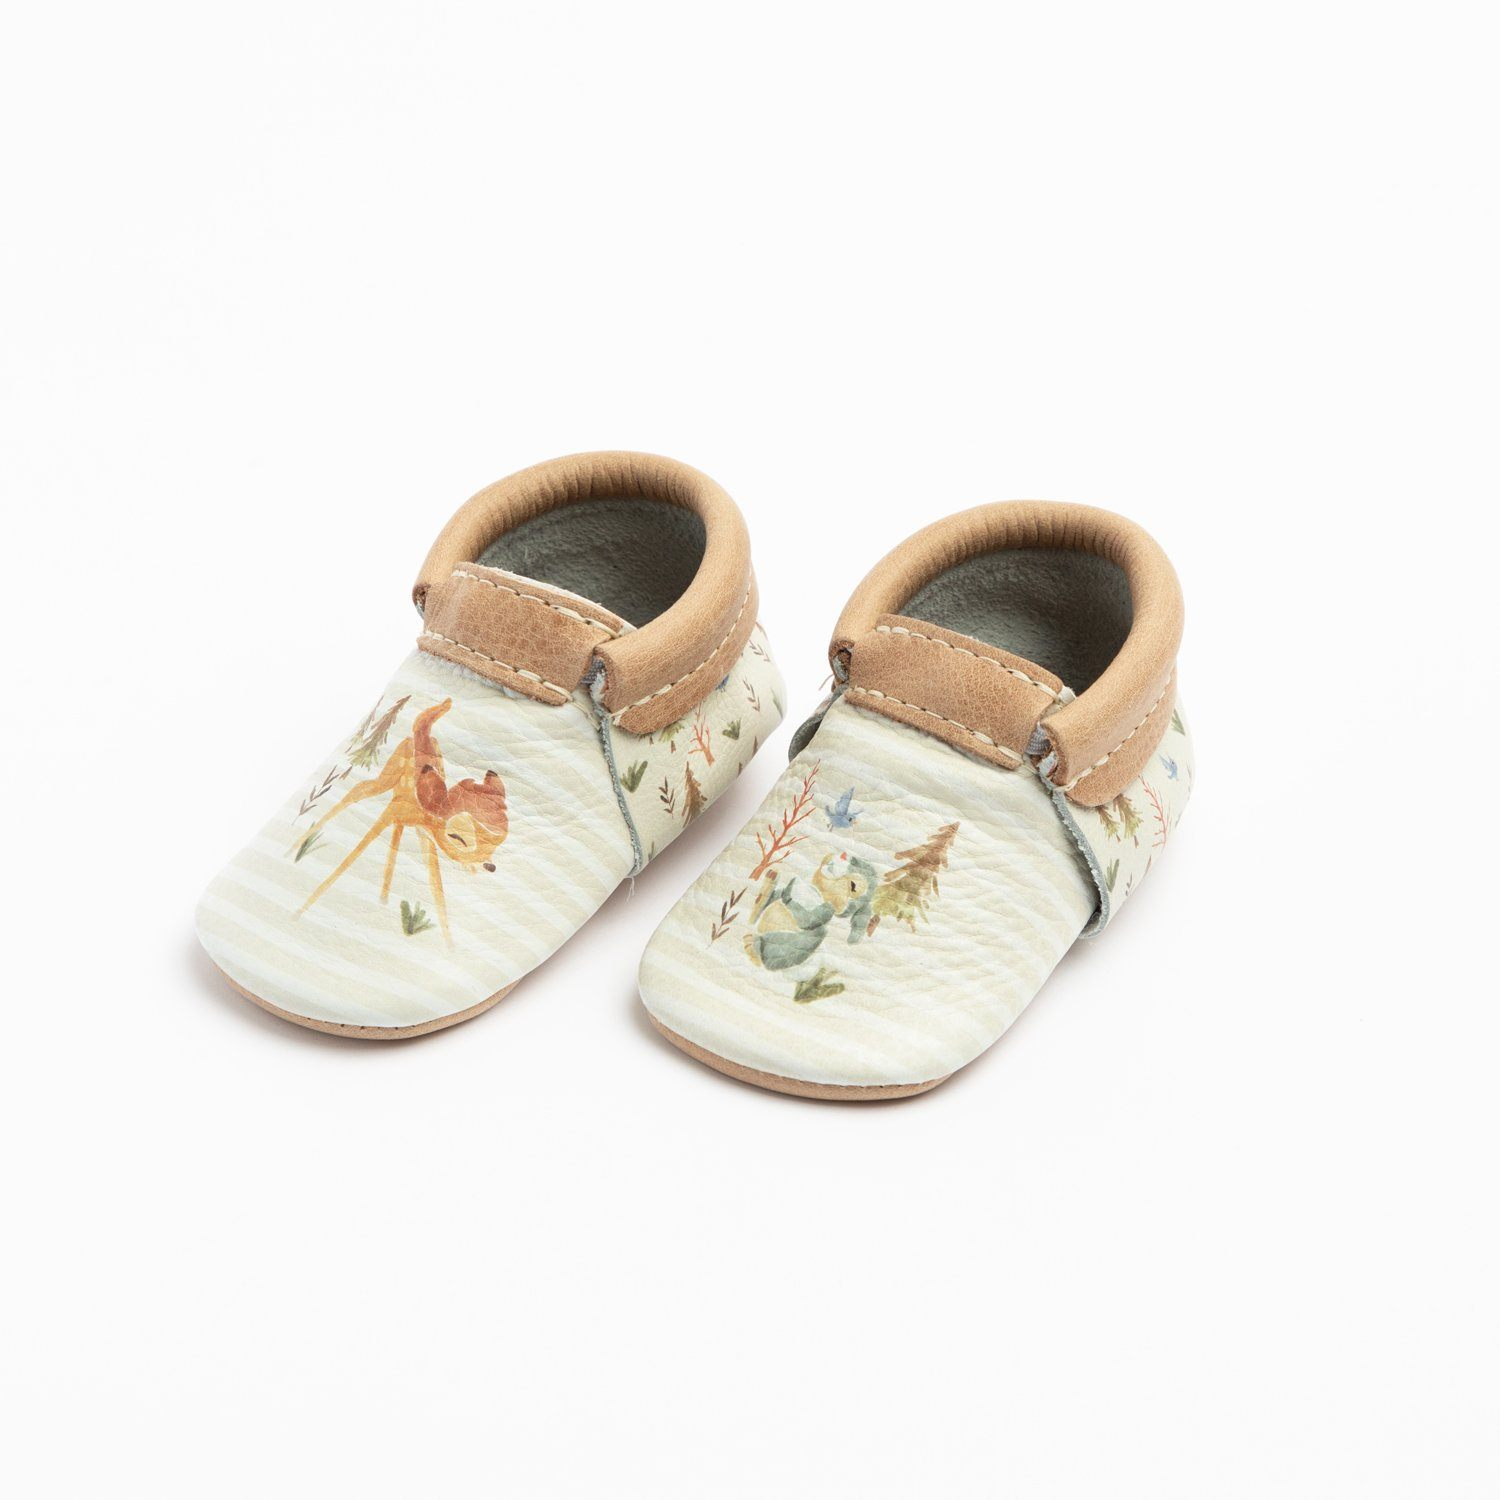 Bambi and Thumper City Mocc City Moccs Soft Soles